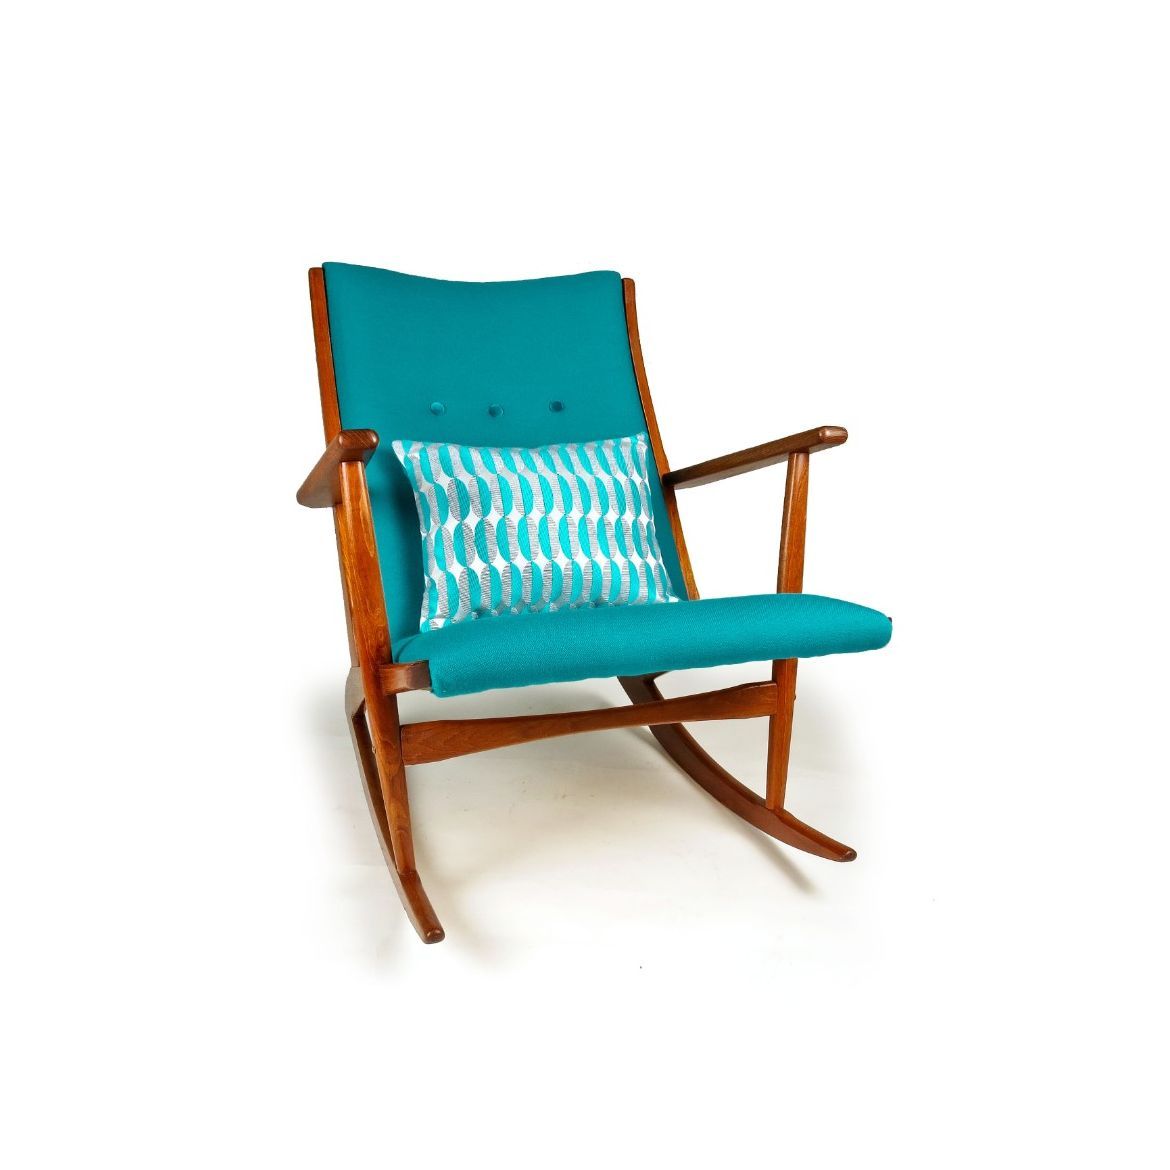 Image of: A Danish 1950 S Mid Century Rocking Chair By Holger Georg Jensen